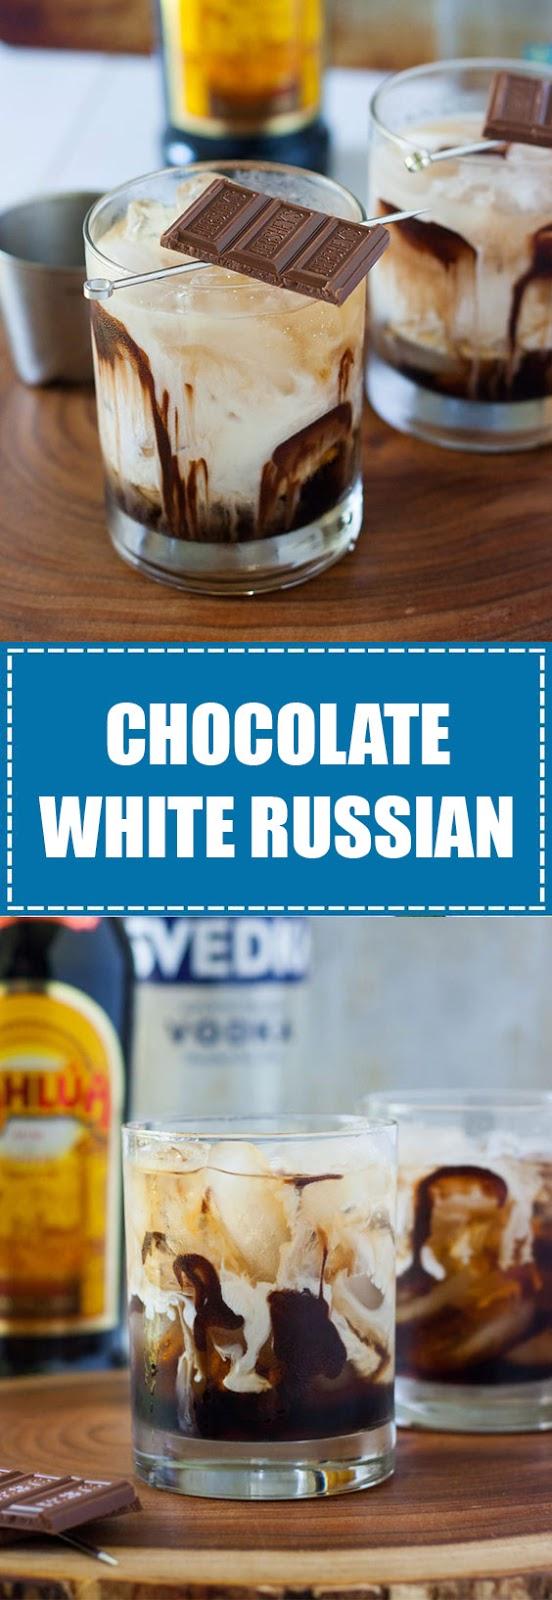 Chocolate White Rusian